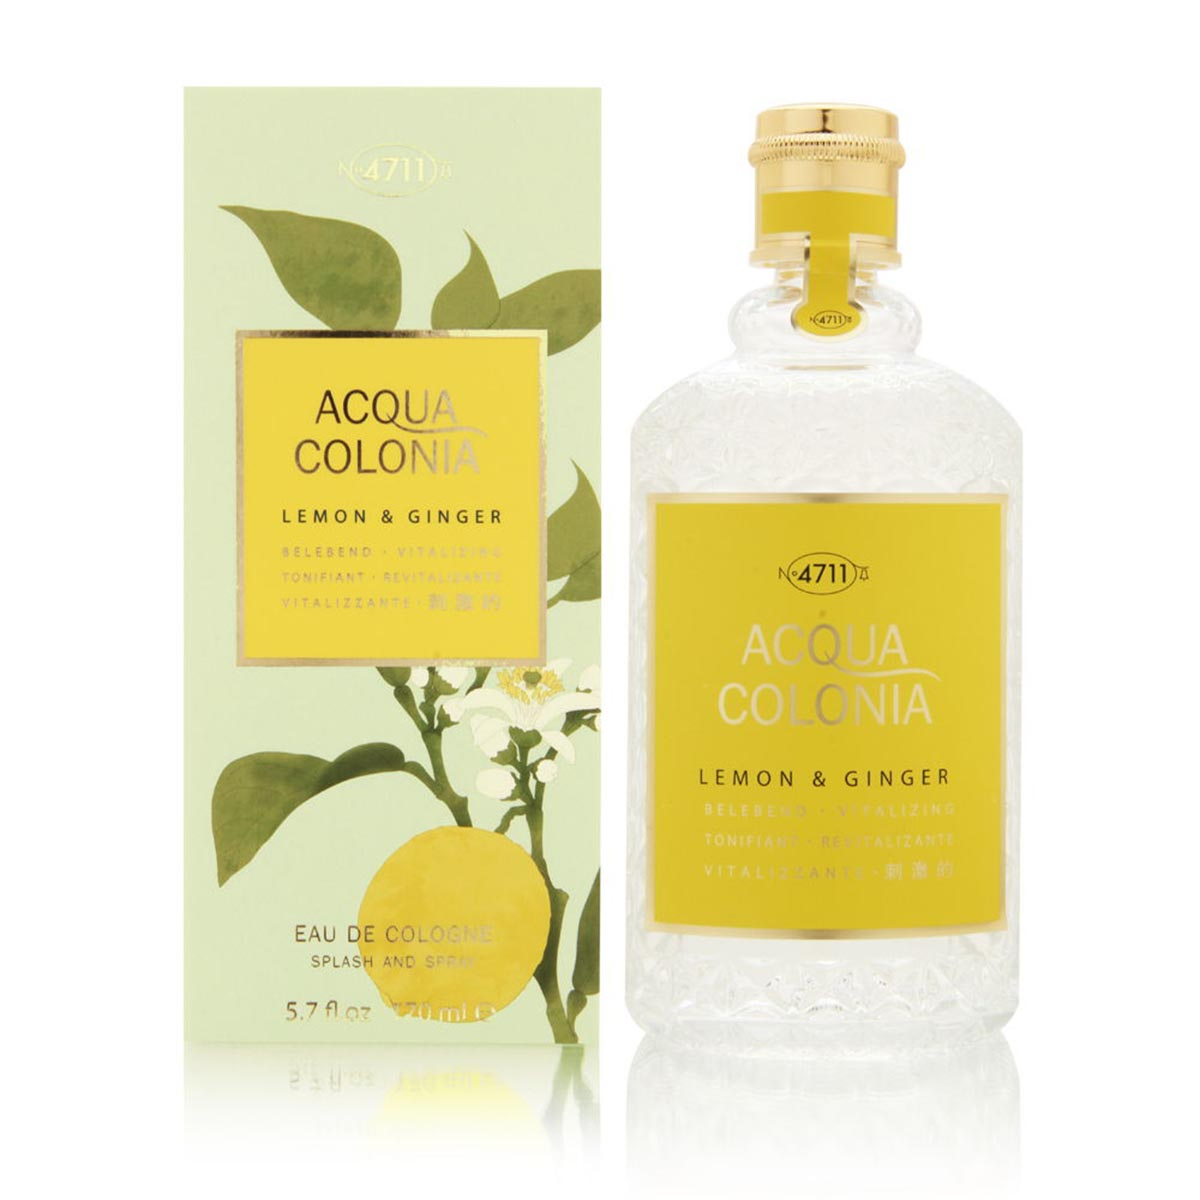 4711 acqua colonia lemon ginger eau de cologne 170ml